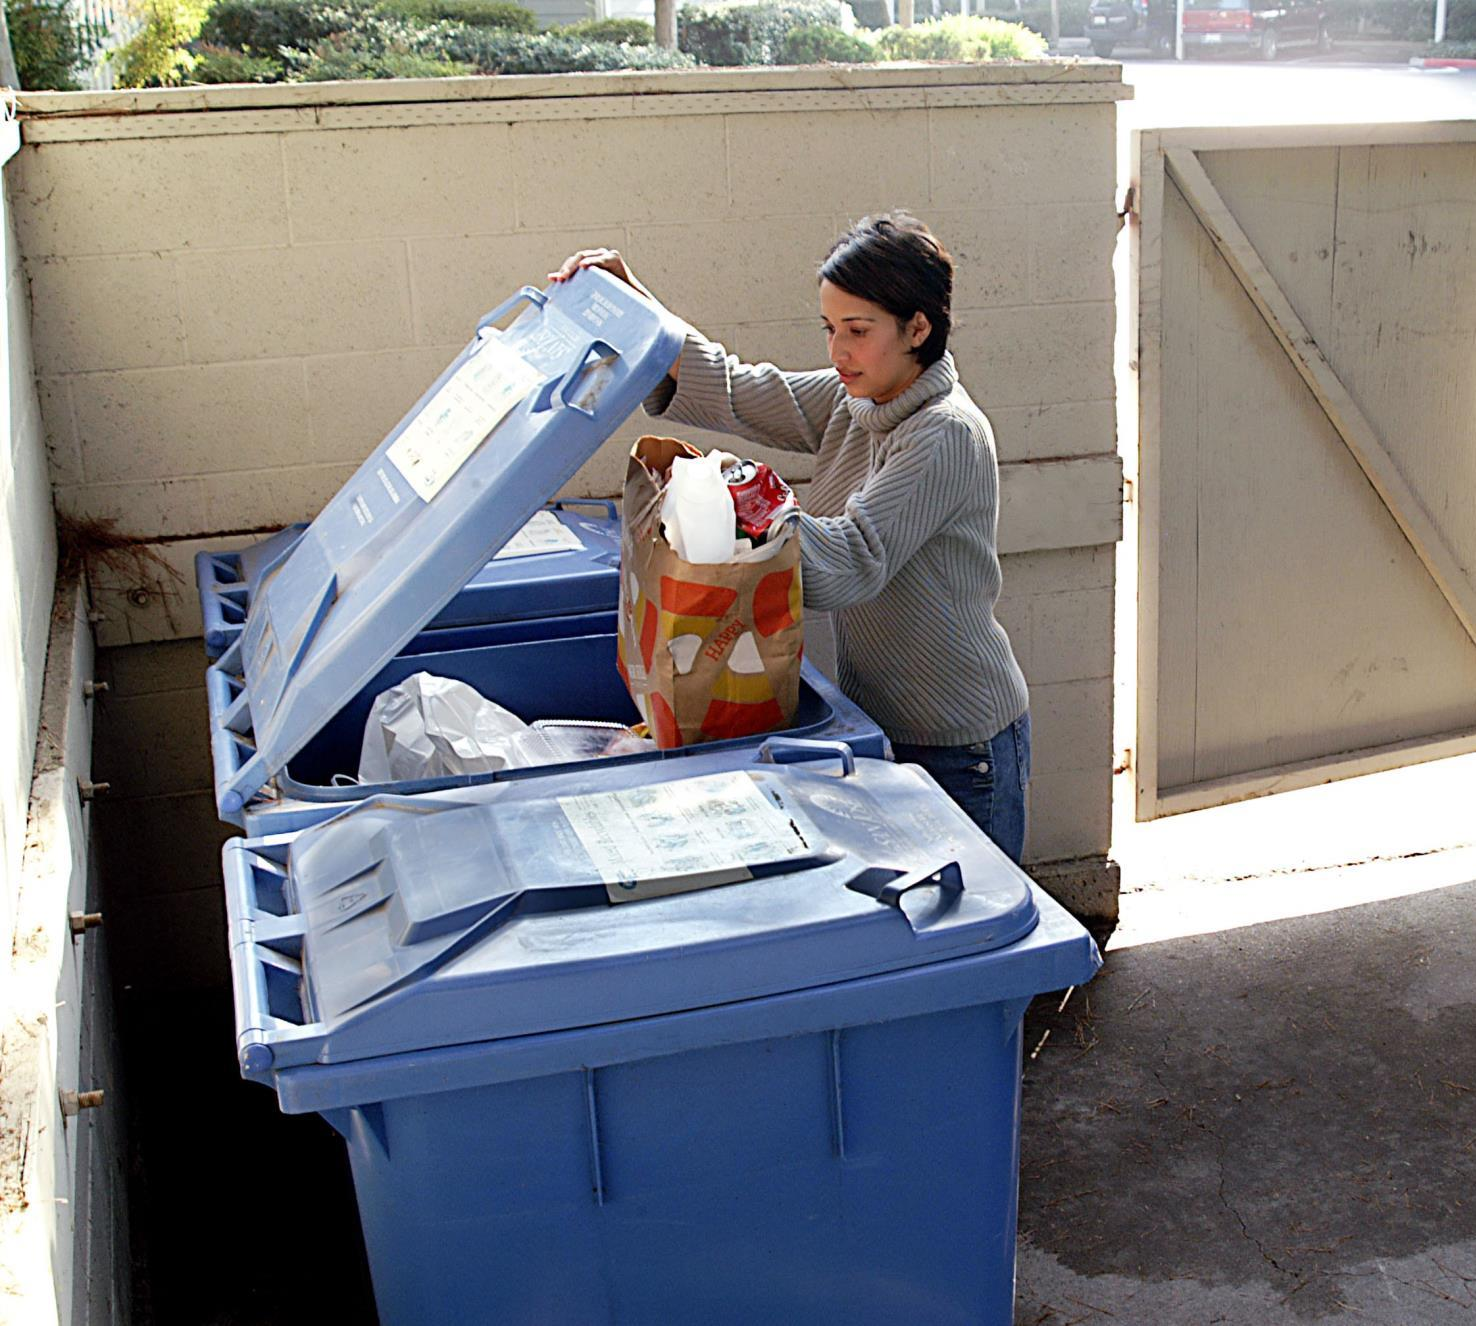 MFD_Recycling_Carts